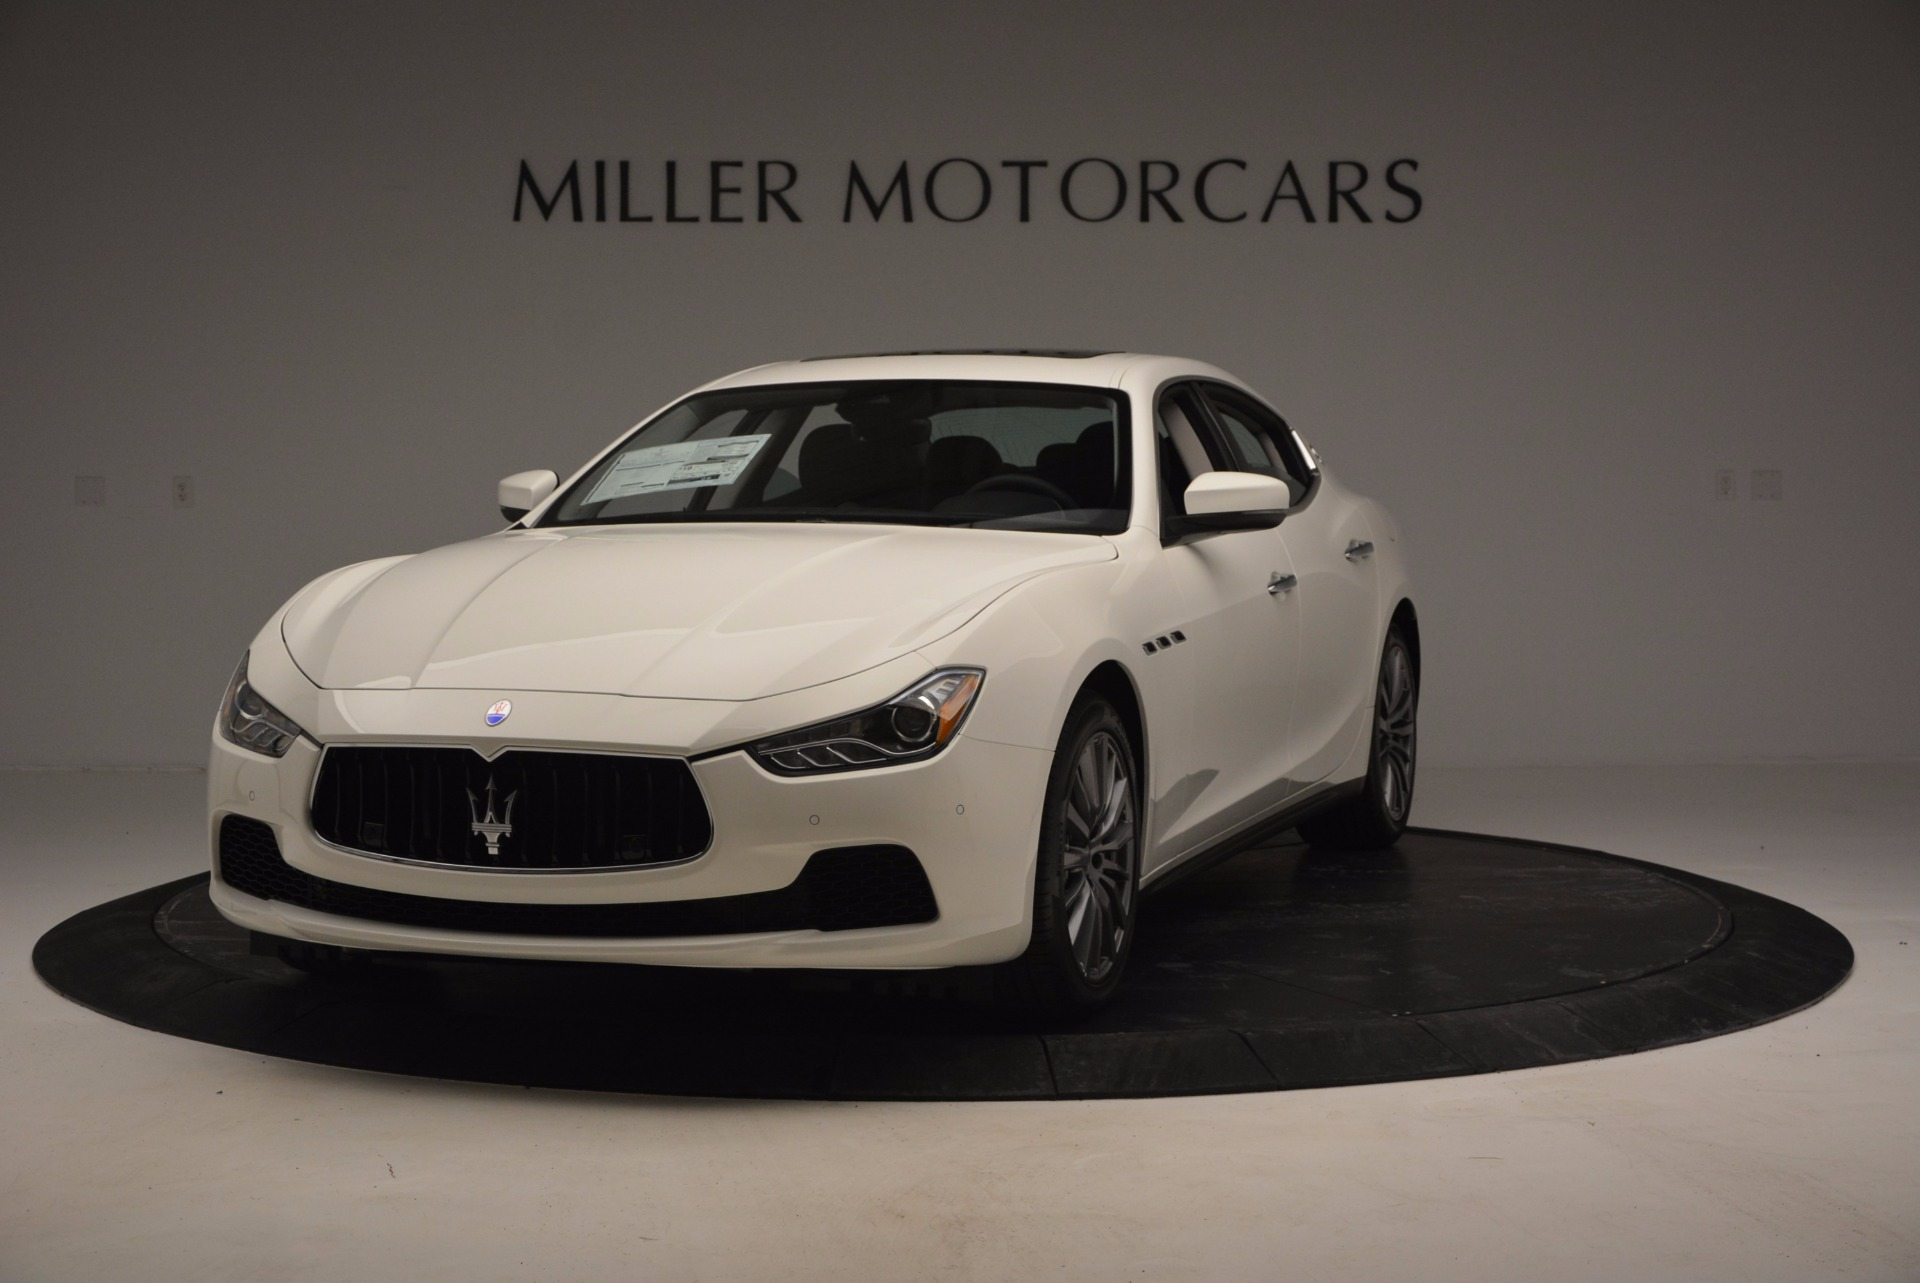 Used 2017 Maserati Ghibli S Q4 Ex-Loaner for sale Sold at Rolls-Royce Motor Cars Greenwich in Greenwich CT 06830 1